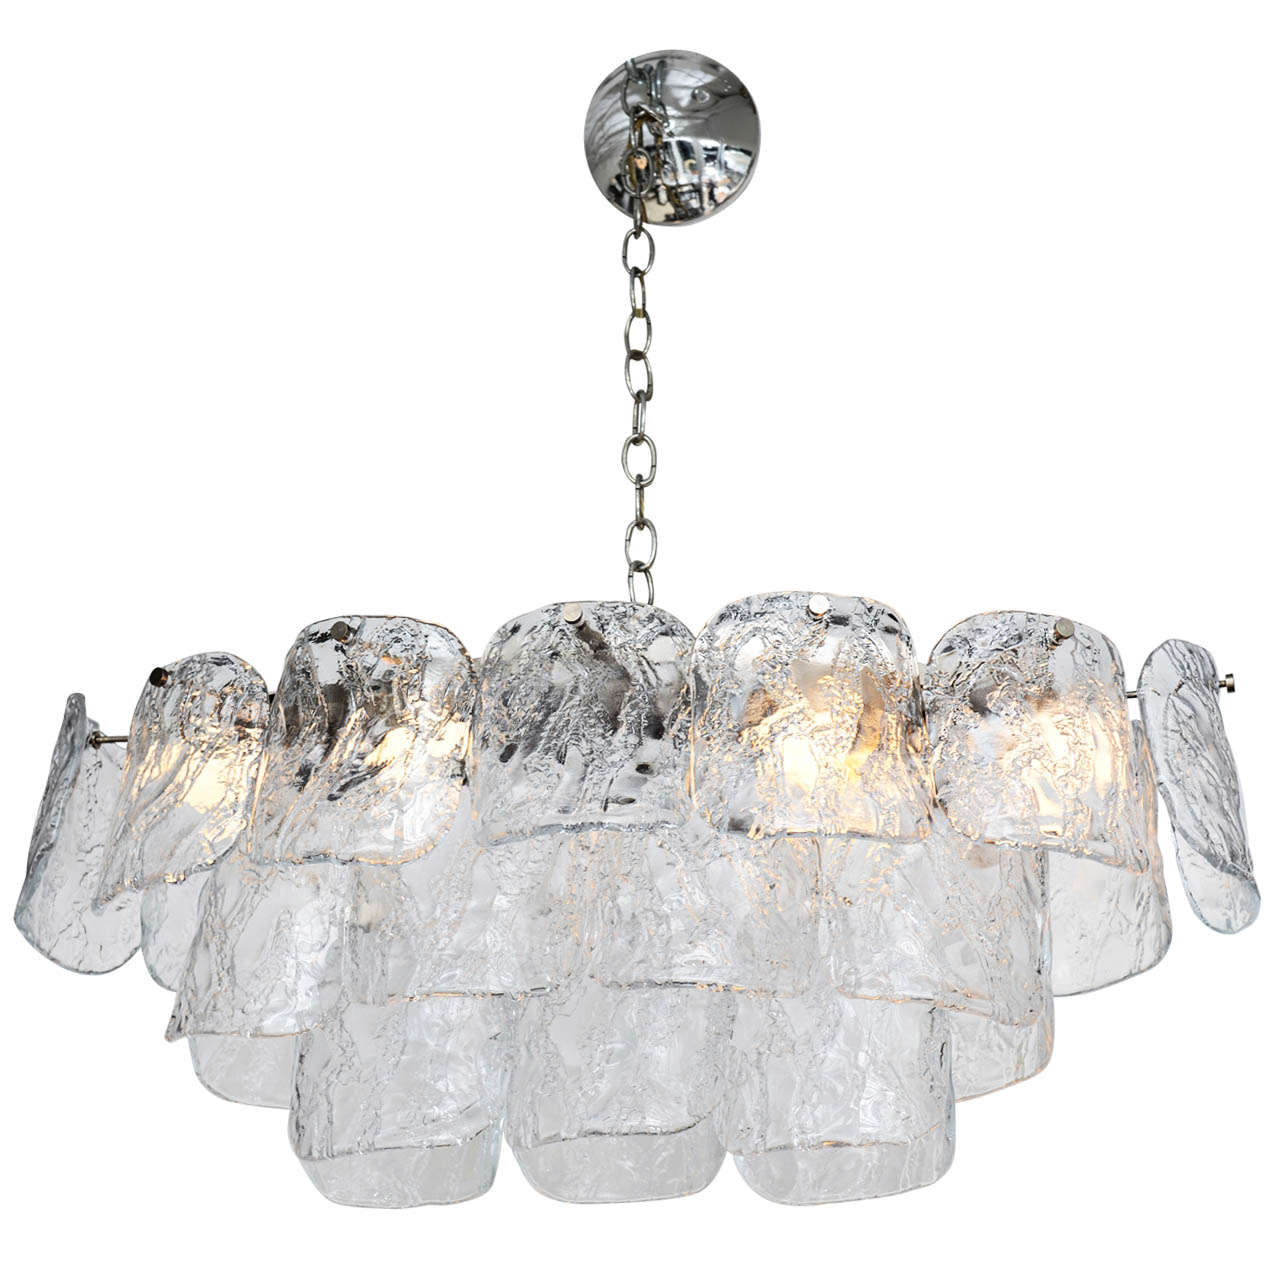 chandelier oval nickel small scenario nessa arteriors products polished home